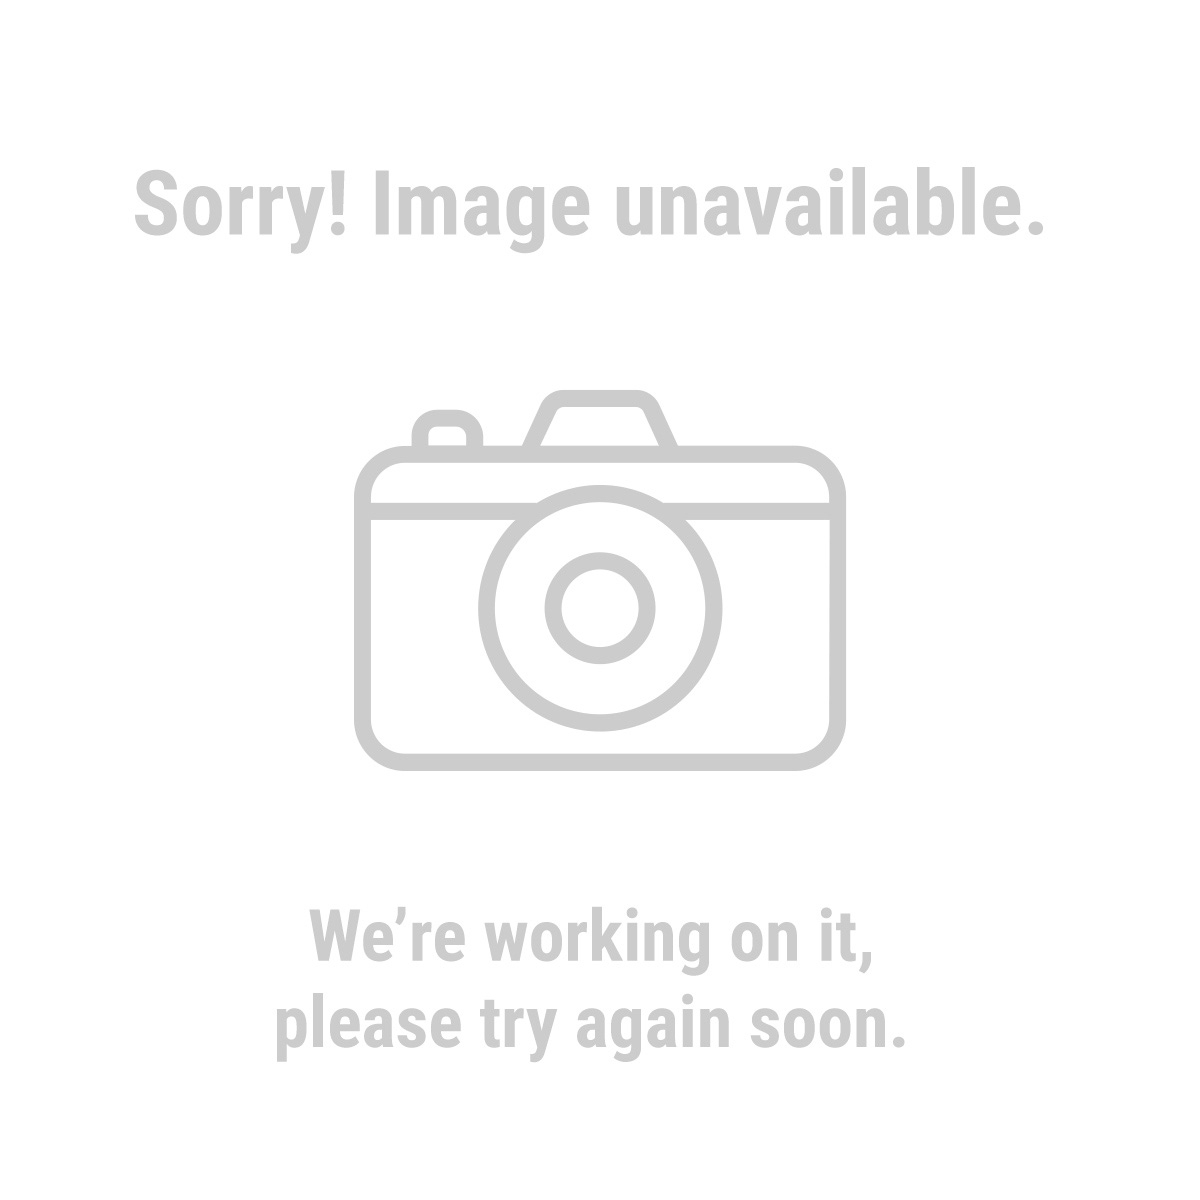 Haul-Master 69055 Heavy Duty Portable Scaffold